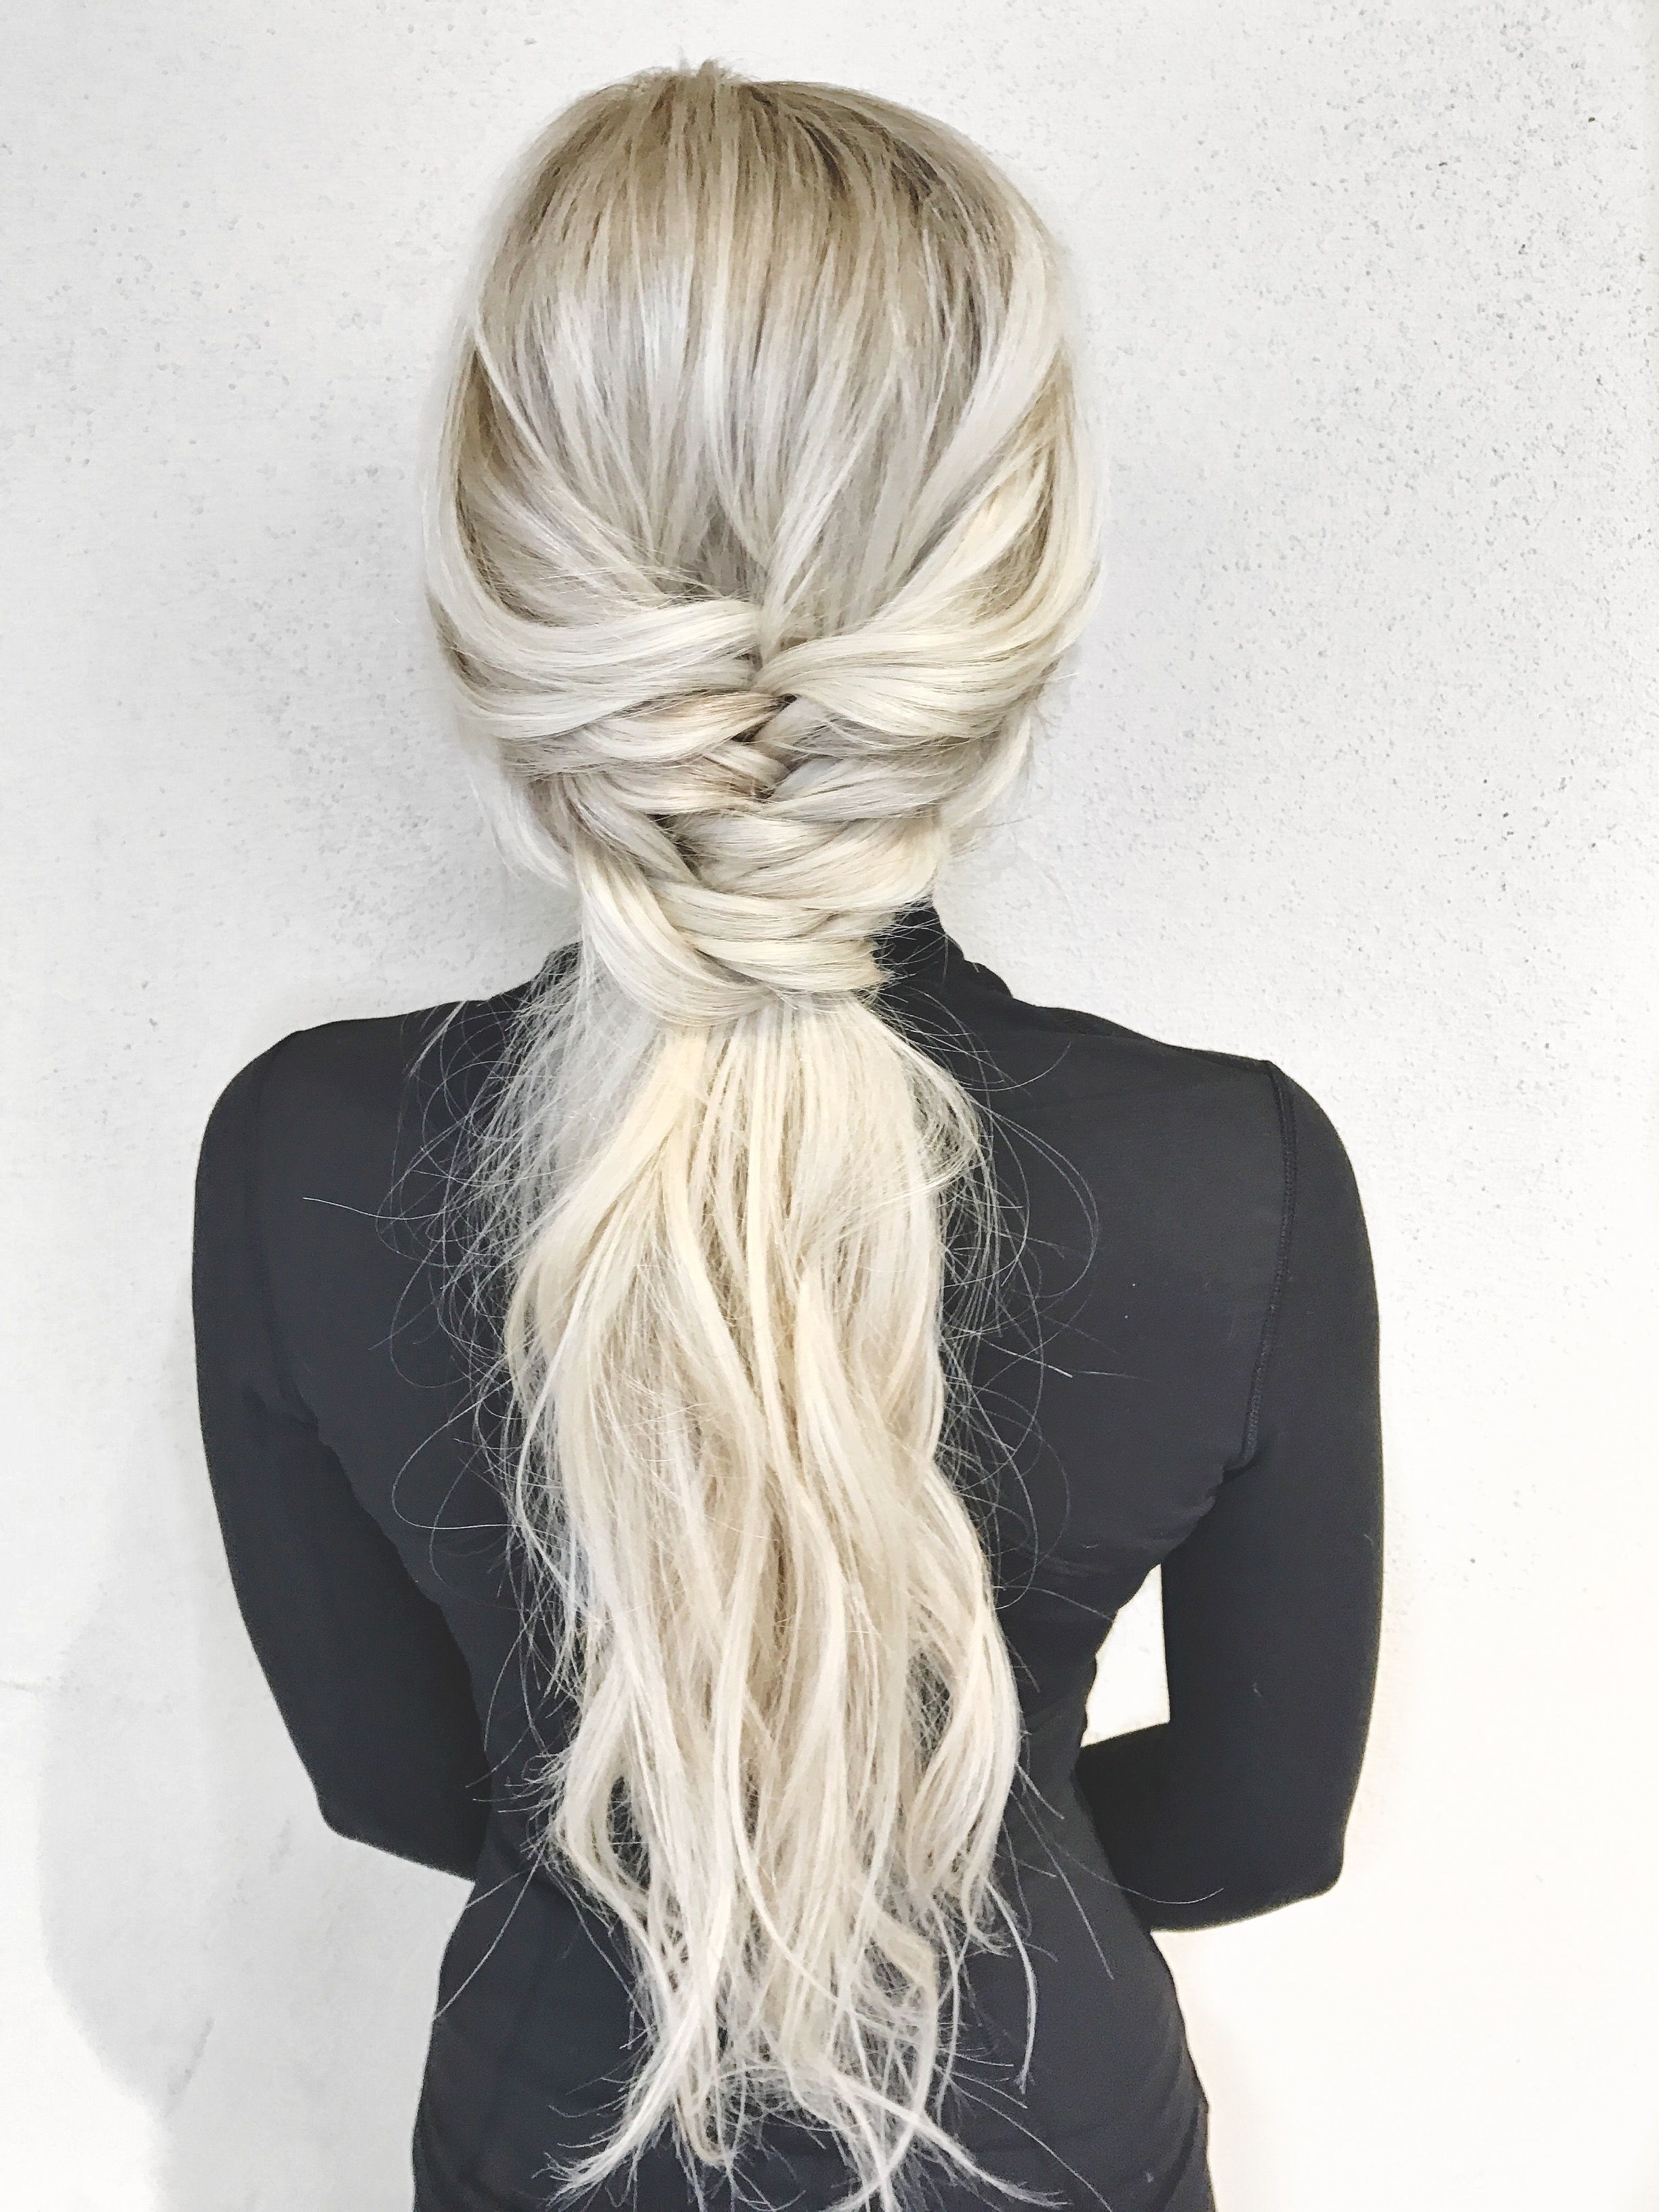 Pin by Shanaz Mondal on Hairstyling | Pinterest | Casual hair